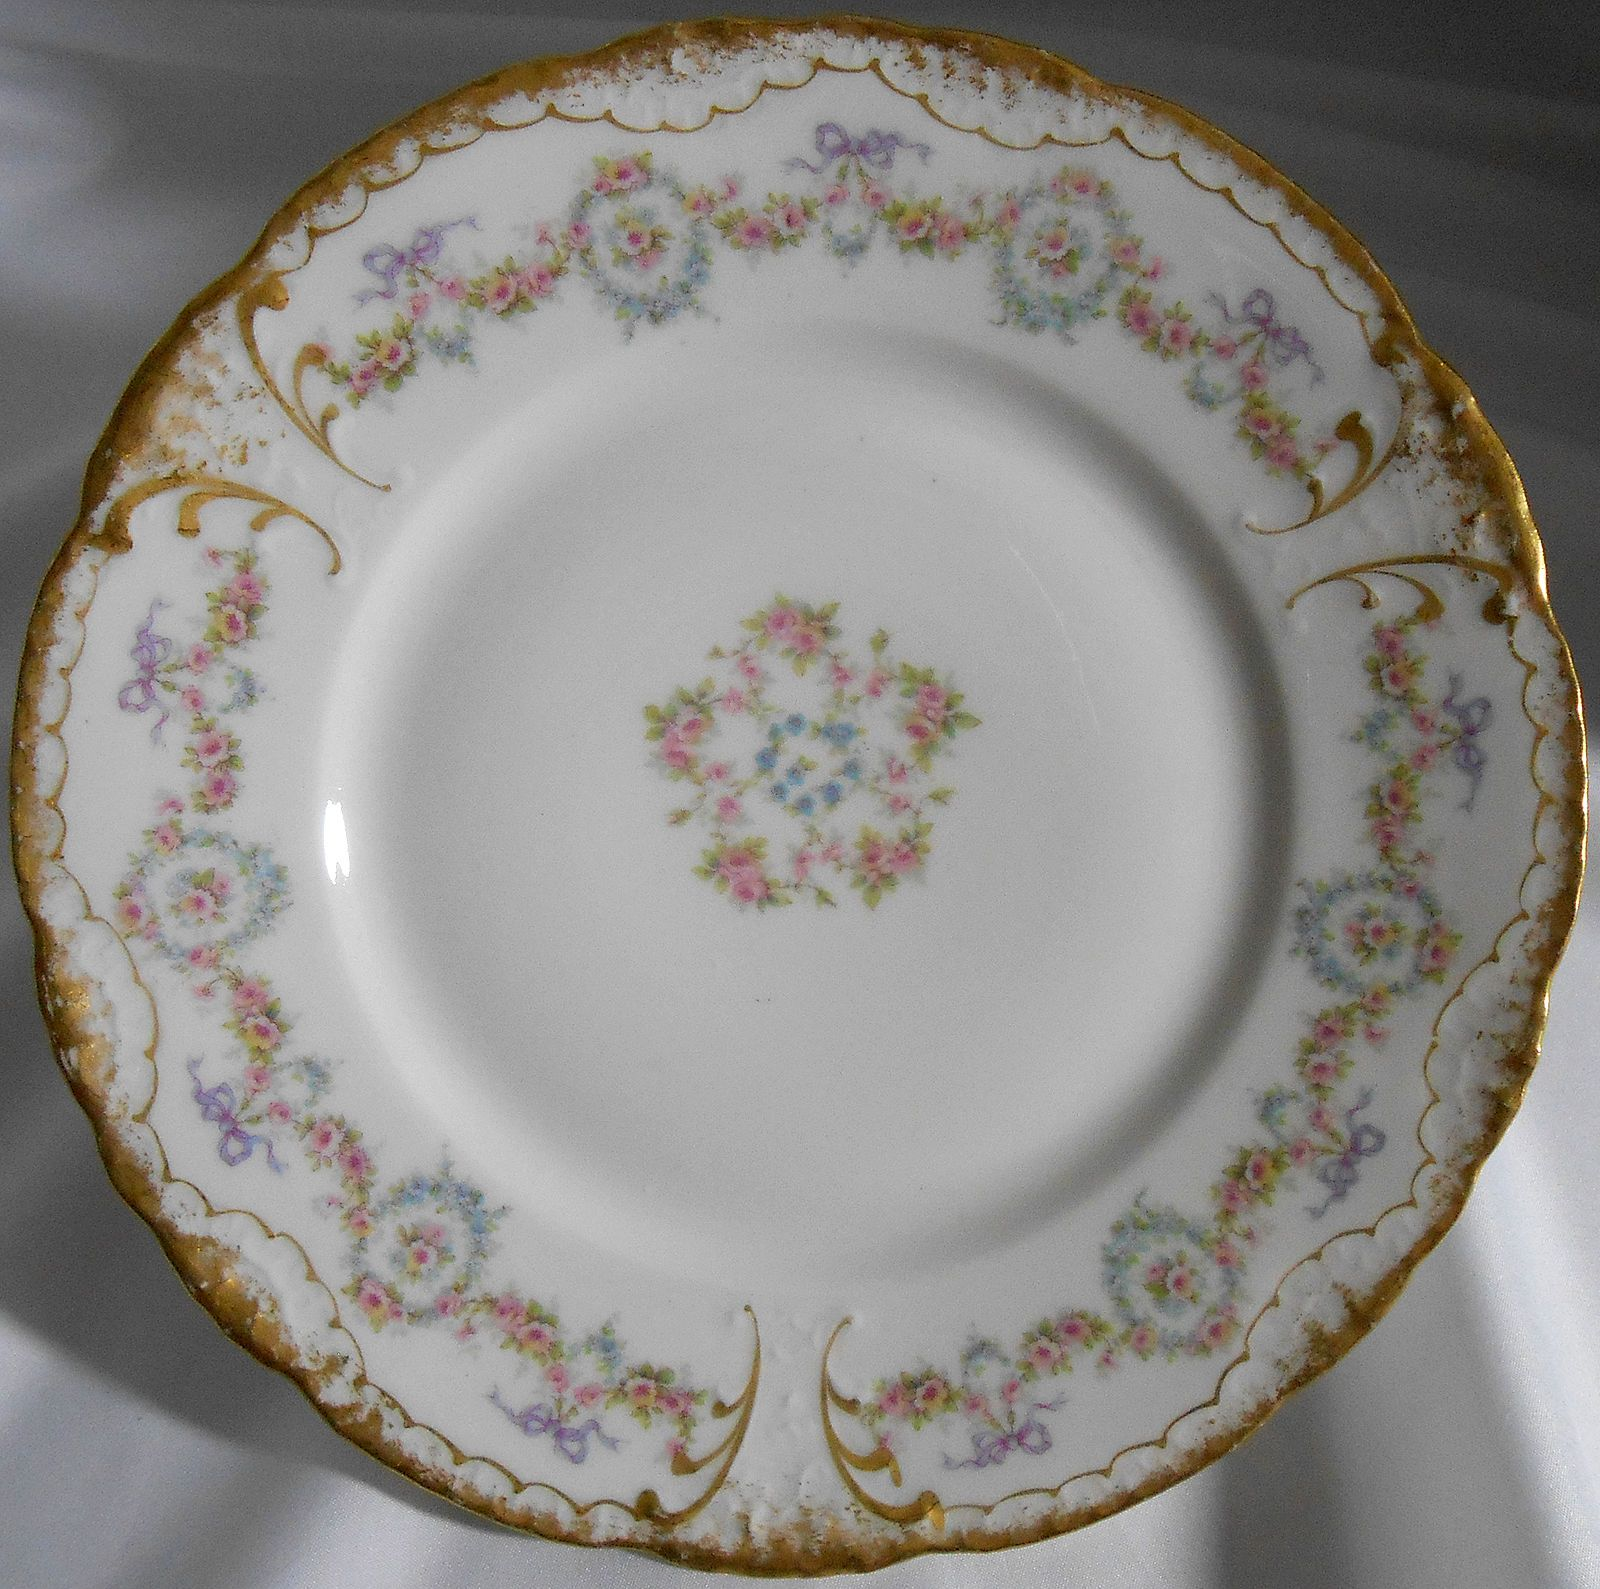 Details About Theodore Haviland Limoges France Covered